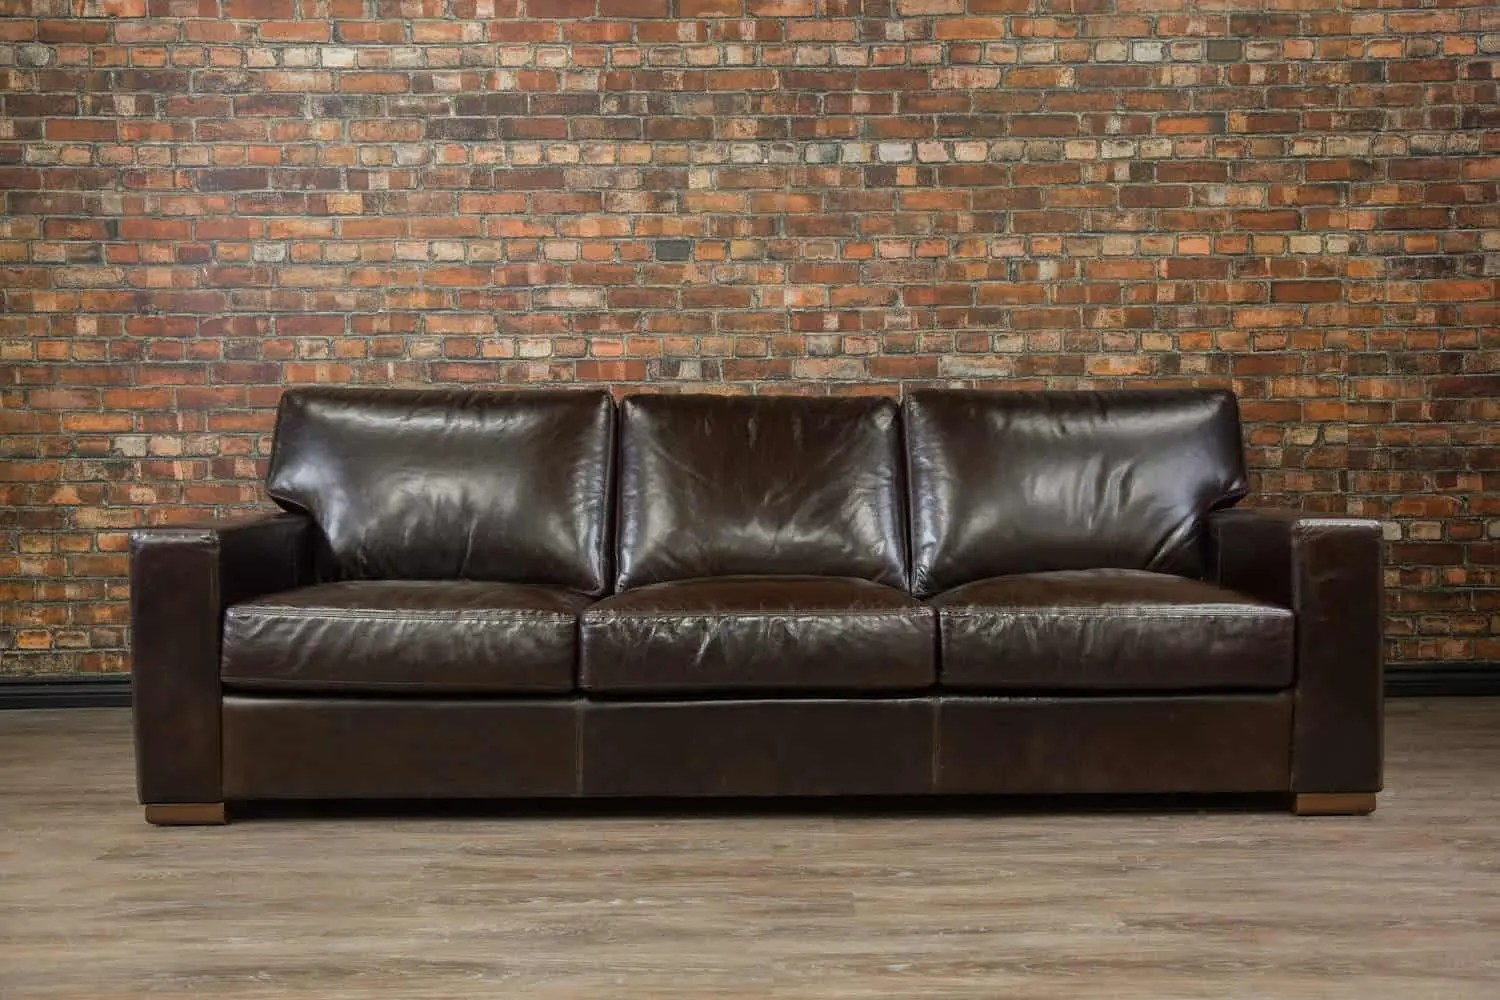 Best Cheap Furniture Stores Toronto Furniture Stores Canada High End Furniture Stores In